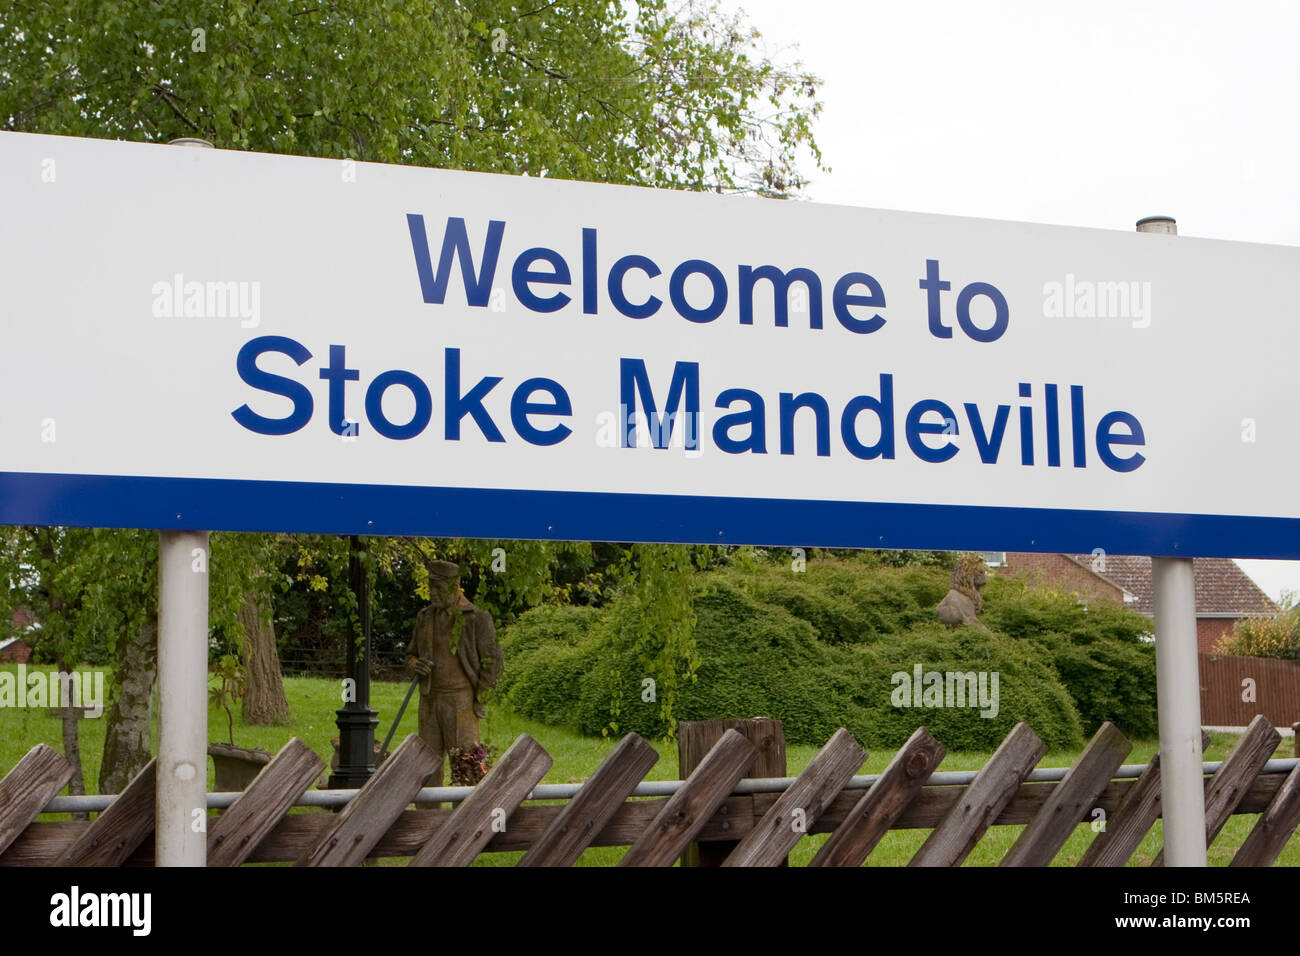 Stoke Mandeville inspiration for name of 2012 Olympics Mascot UK - Stock Image